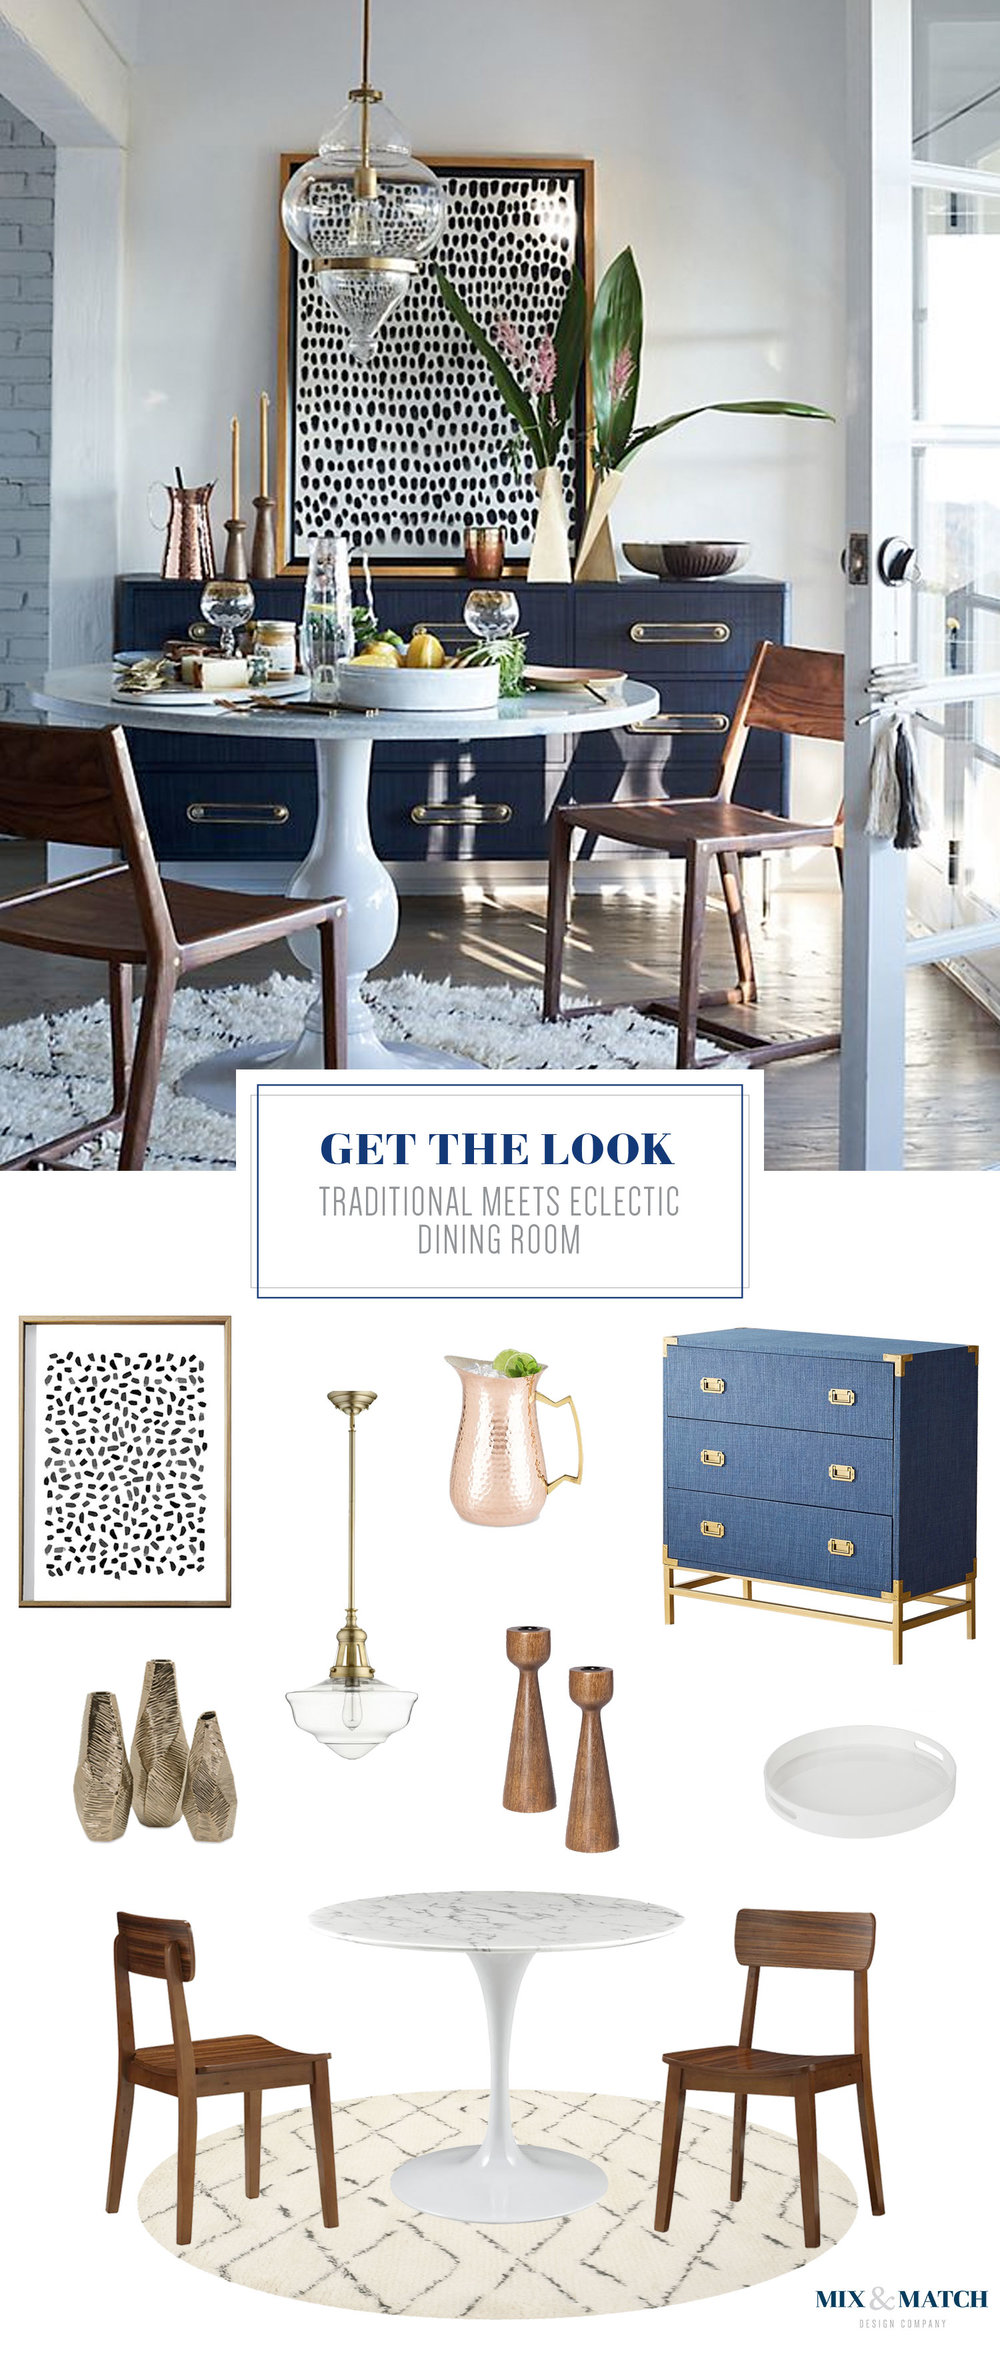 Get the look of this traditional meets eclectic dining room on the blog! / Find all the sources for these look-a-like pieces at mixandmatchdesign.com. Mid-century modern dining room, glam boho dining room, Anthropologie dining room, navy brass white dining room